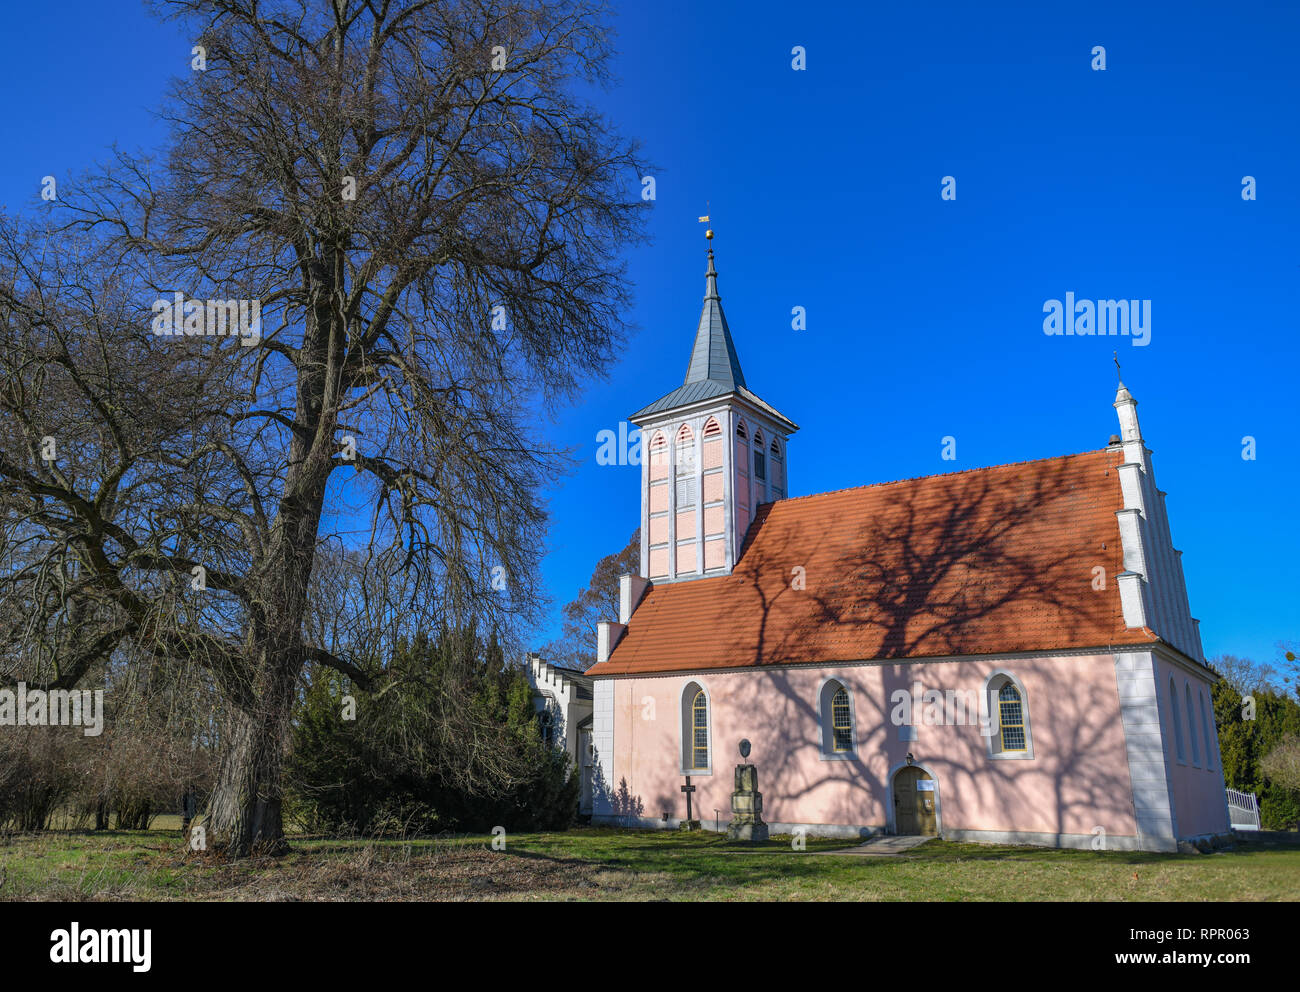 22 February 2019, Brandenburg, Criewen: The village church is picturesquely embedded in the Lenne Park of Criewen not far from the Brandenburg town of Schwedt. Criewen is situated near the Polish border, directly adjacent to the Lower Oder Valley National Park. The village was first mentioned in a document in 1354 and is therefore one of the oldest Slavic fishing villages. Sights worth seeing are the castle in the Lenne Park built for Otto von Arnim and the National Park Information Centre. Since 2003, the German Foundation for the Preservation of Monuments has also been involved in the restor - Stock Image